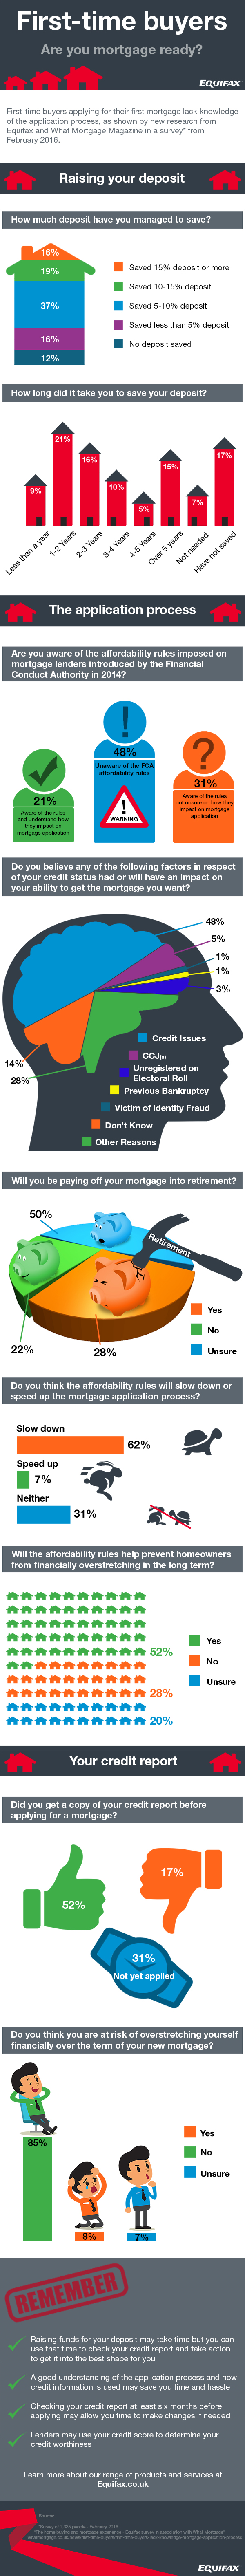 Mortgage Application Process - How Prepared Britons Are To Buy A Home